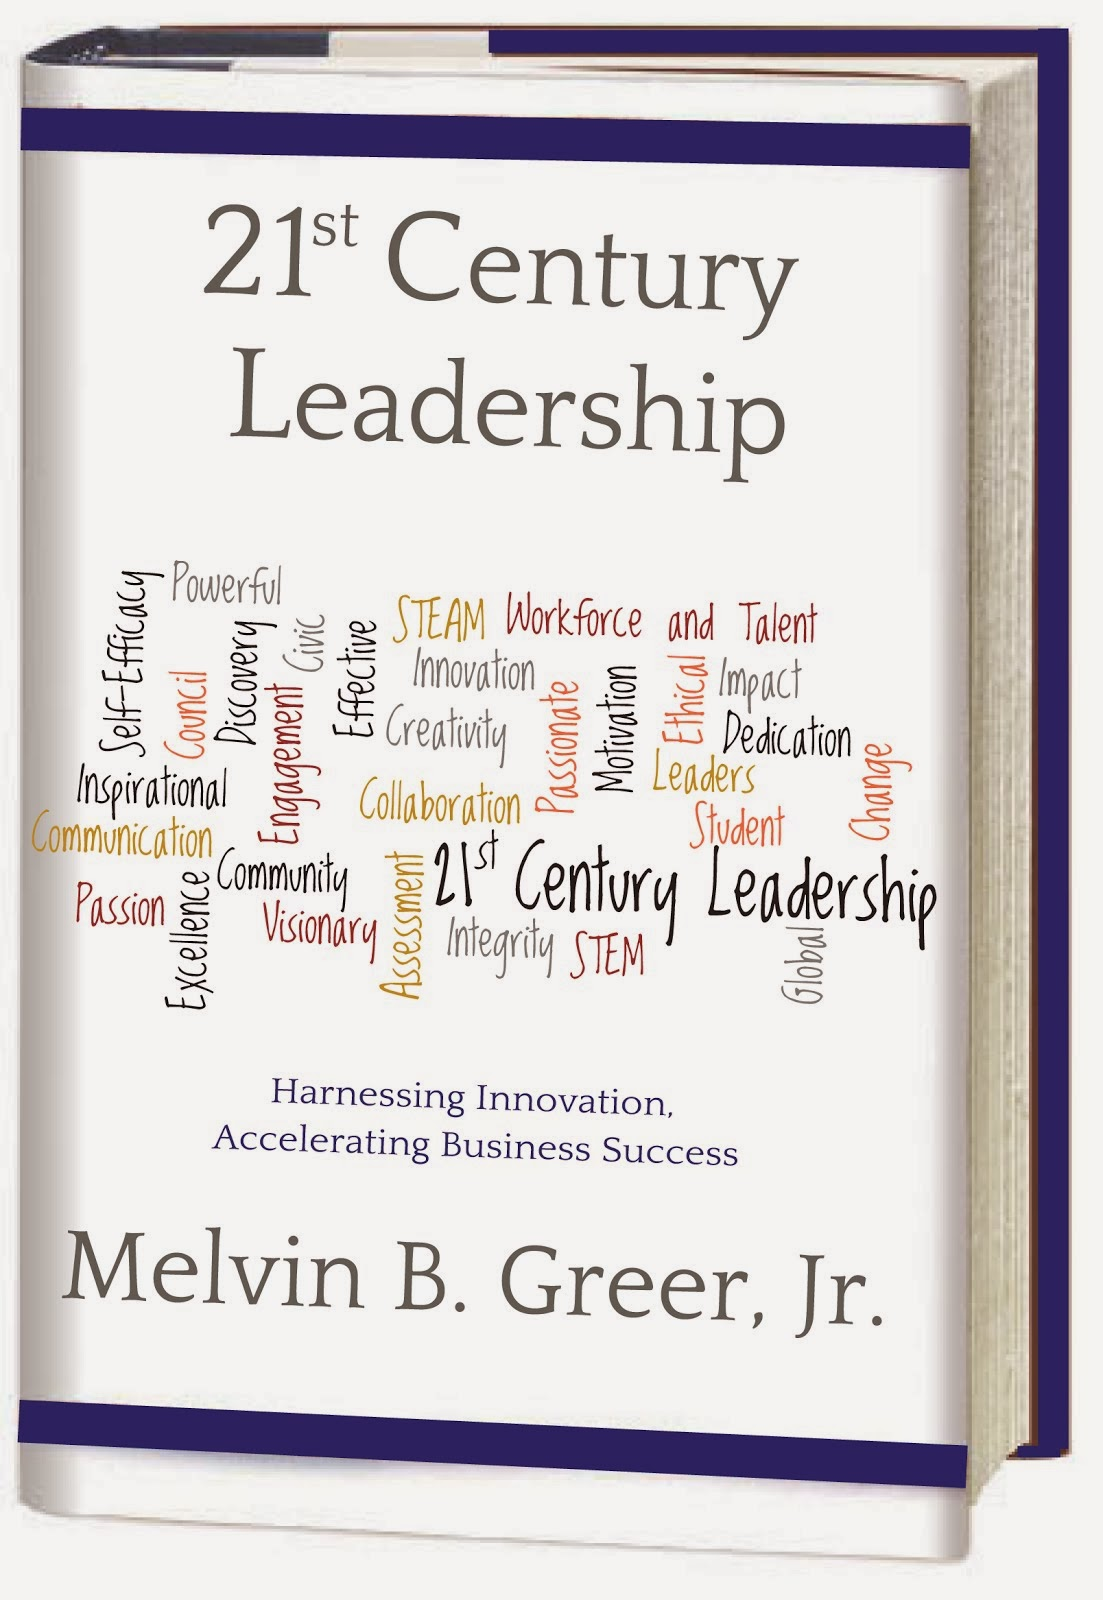 https://www.greerinstitute.org/21st-century-leadership/